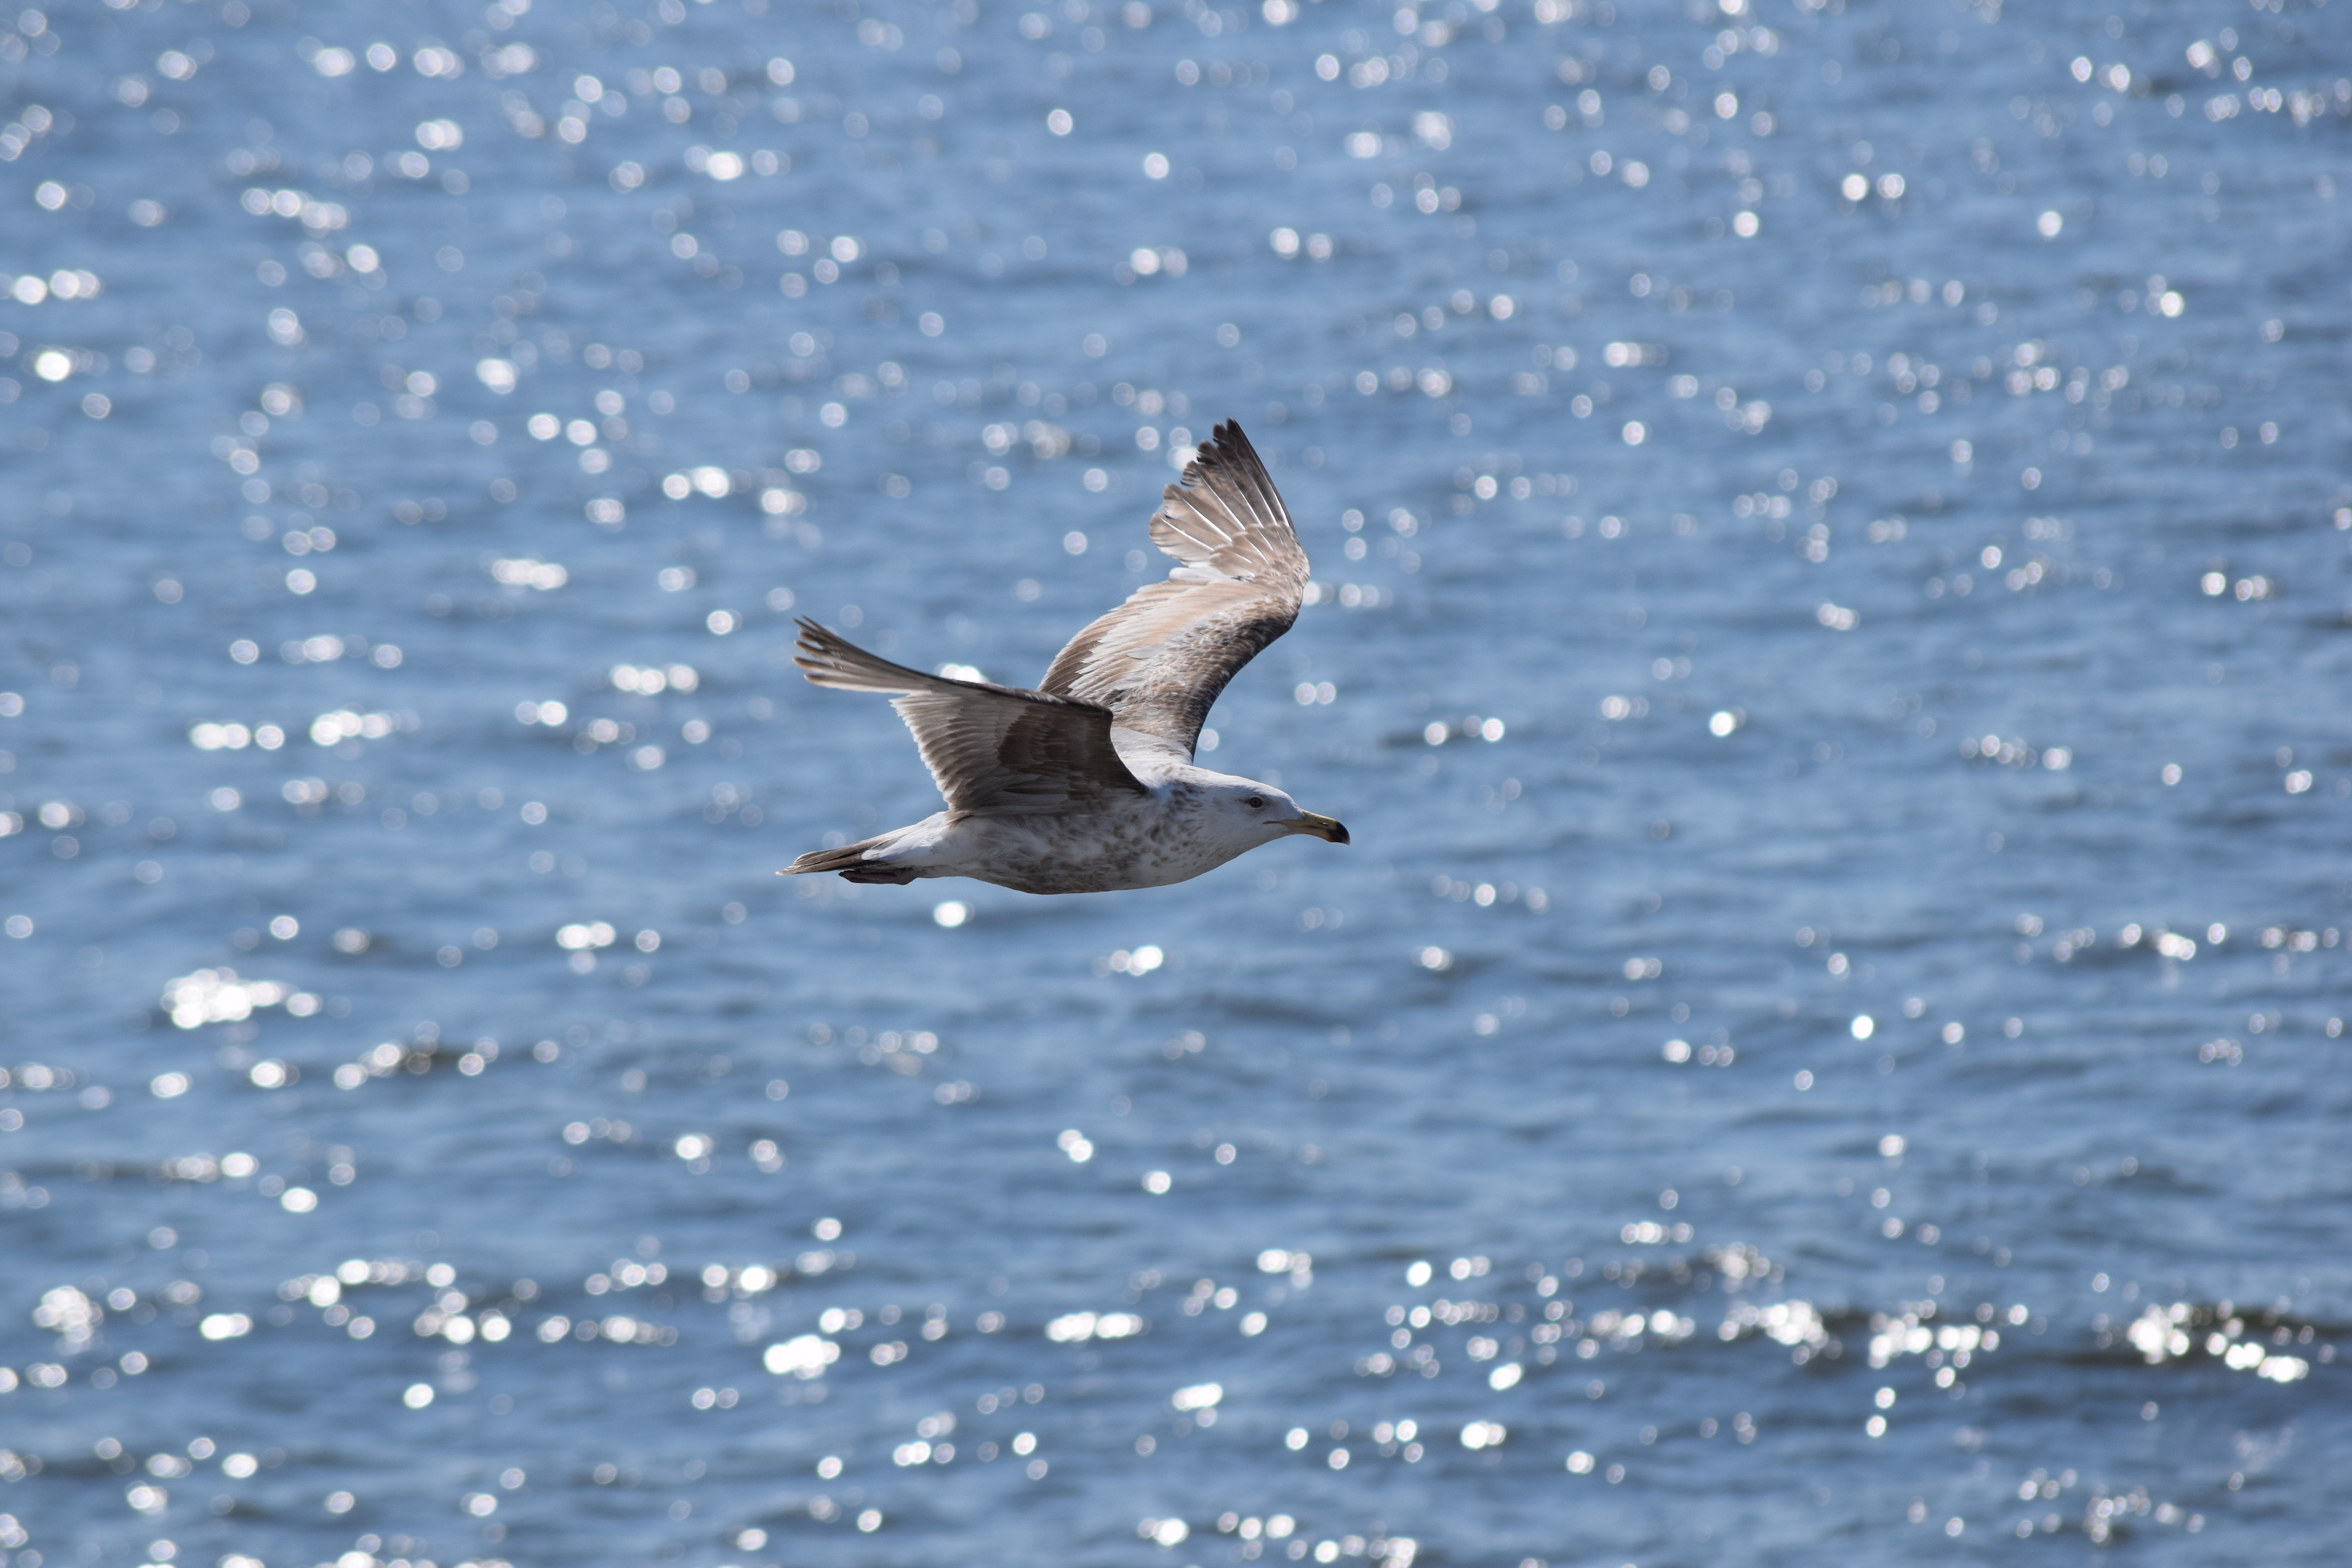 Researchers are working to stay ahead of the flu by collecting samples from migrating seabirds who make a pitstop in Delaware Bay.